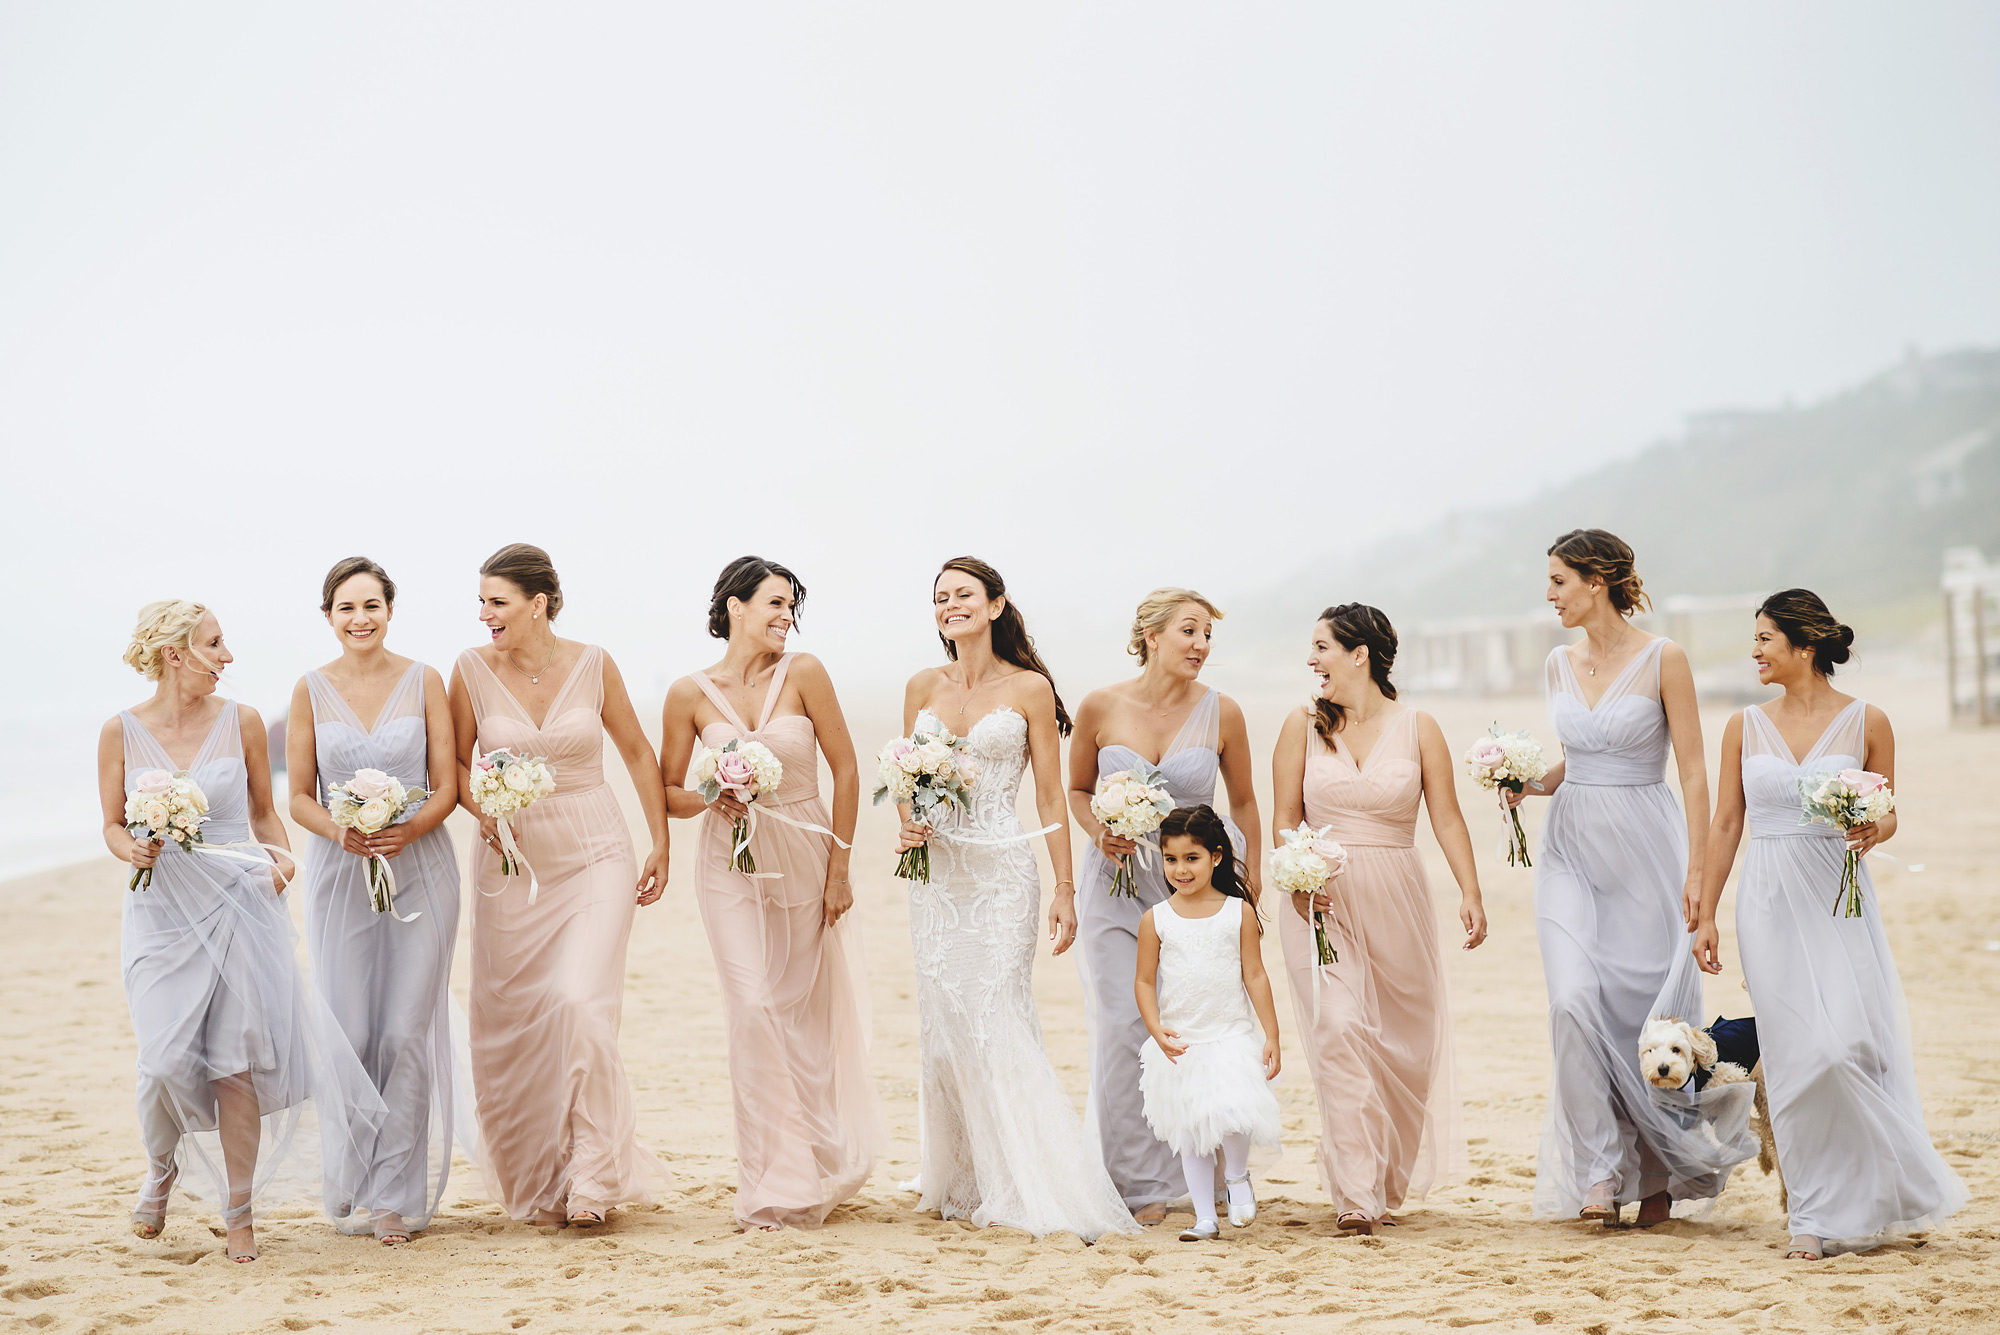 Bridal party in blush pink and soft blue gowns - photo by Ross Harvey - England